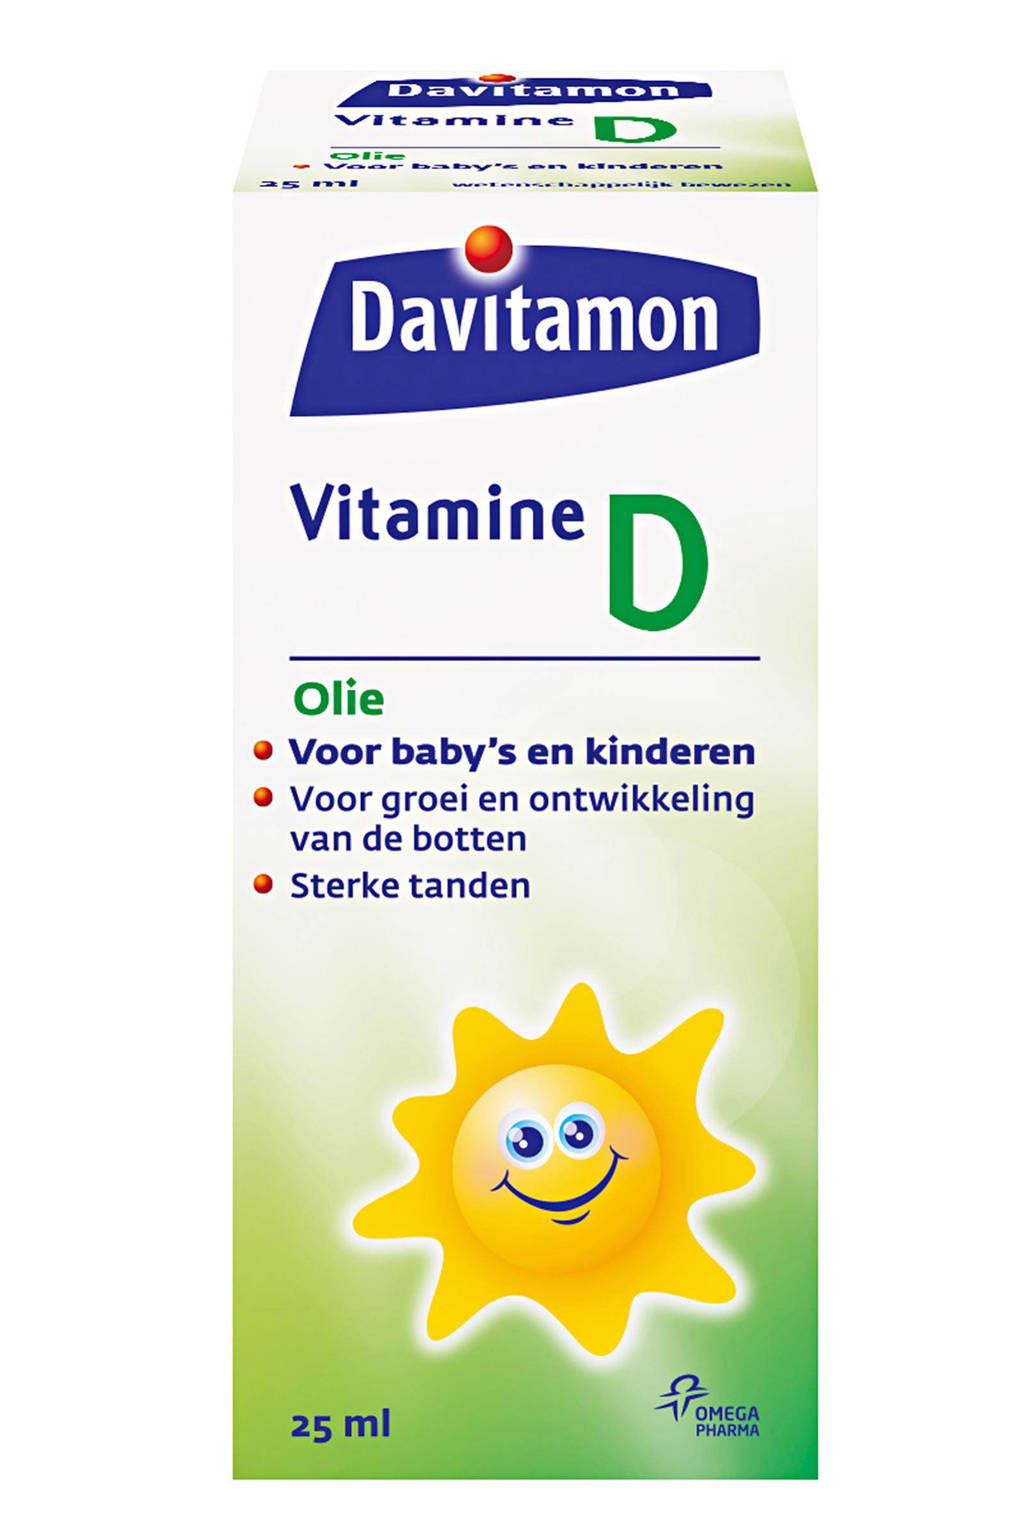 Davitamon vitamine D olie 25 ml, Olie